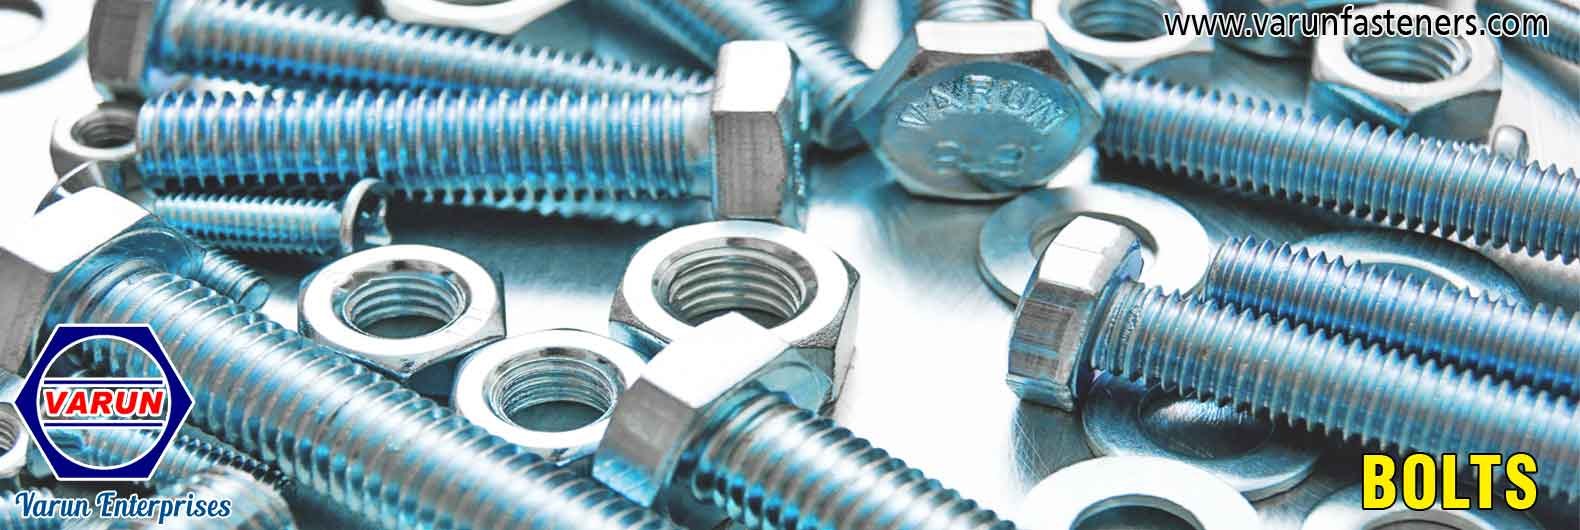 High Tensile Bolts Forged Bolts Hex Bolts Hexagonal Bolts manufacturers exporters suppliers in India